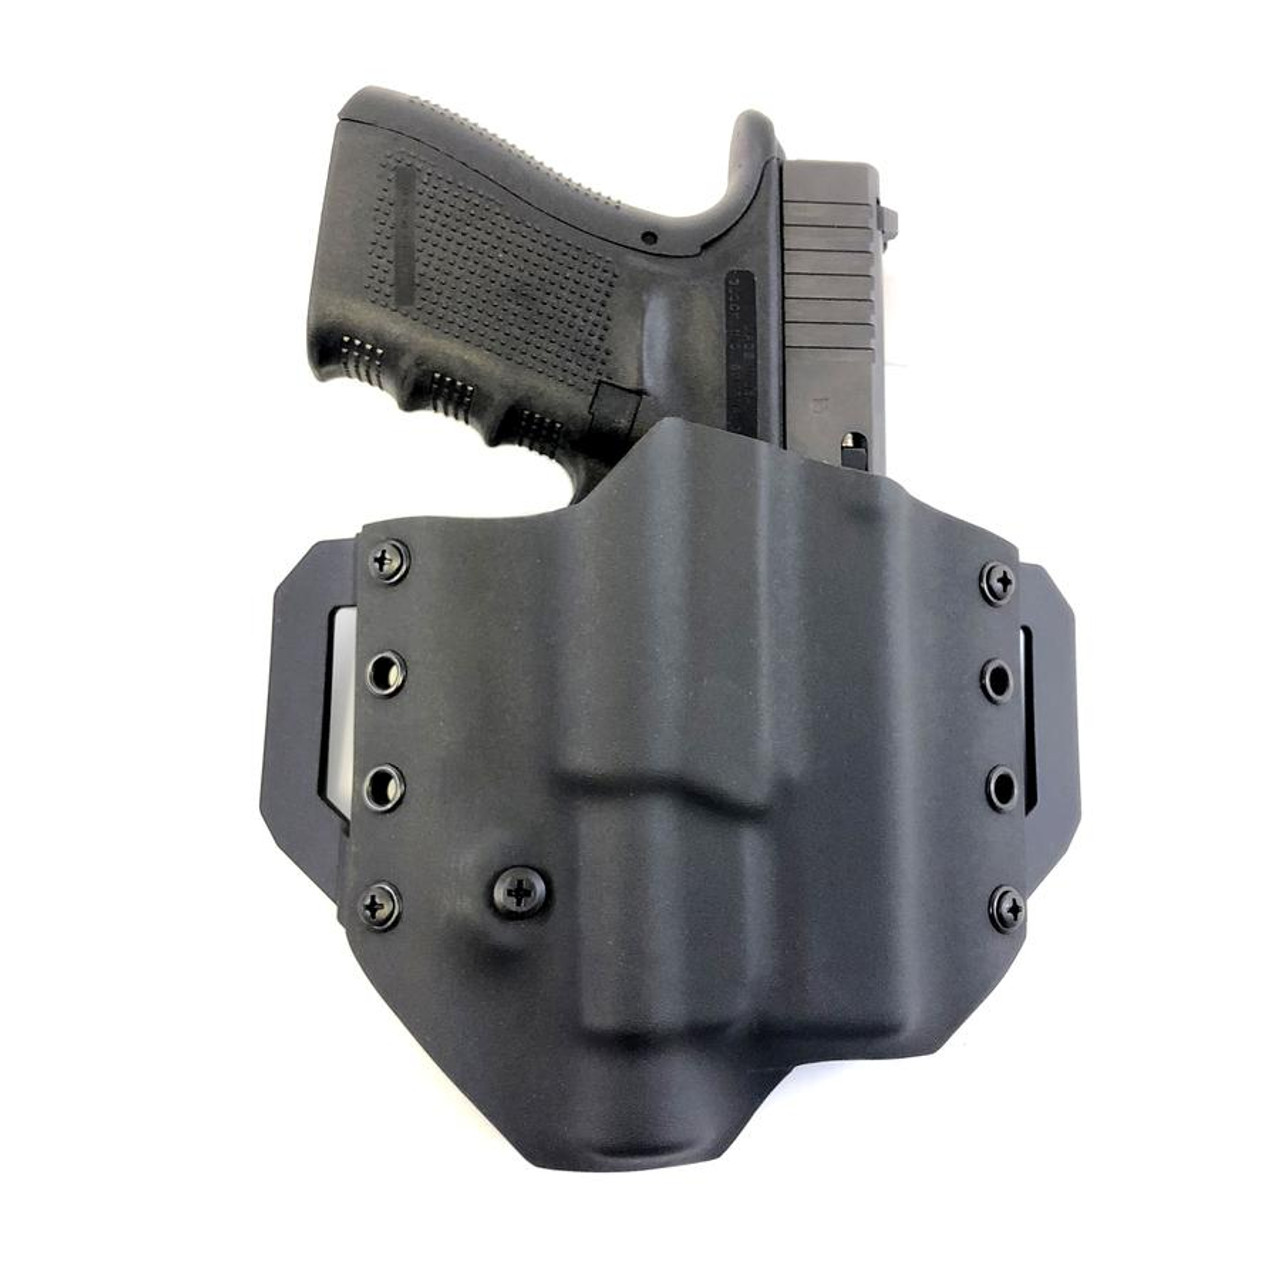 OWB-L Pancake Kydex Holster : Open Carry